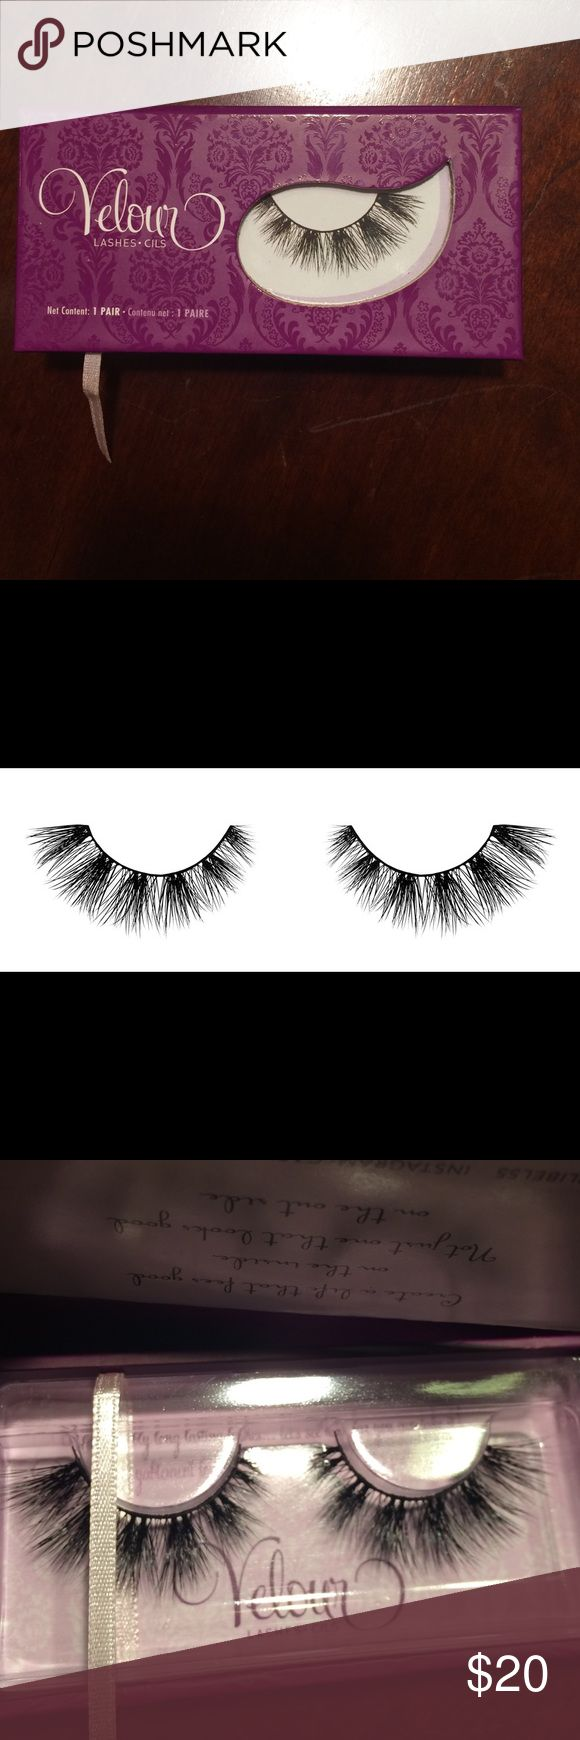 Velour Carli Mink Eyelashes Velour Carli Mink Eyelashes Velour Lashes Makeup False Eyelashes